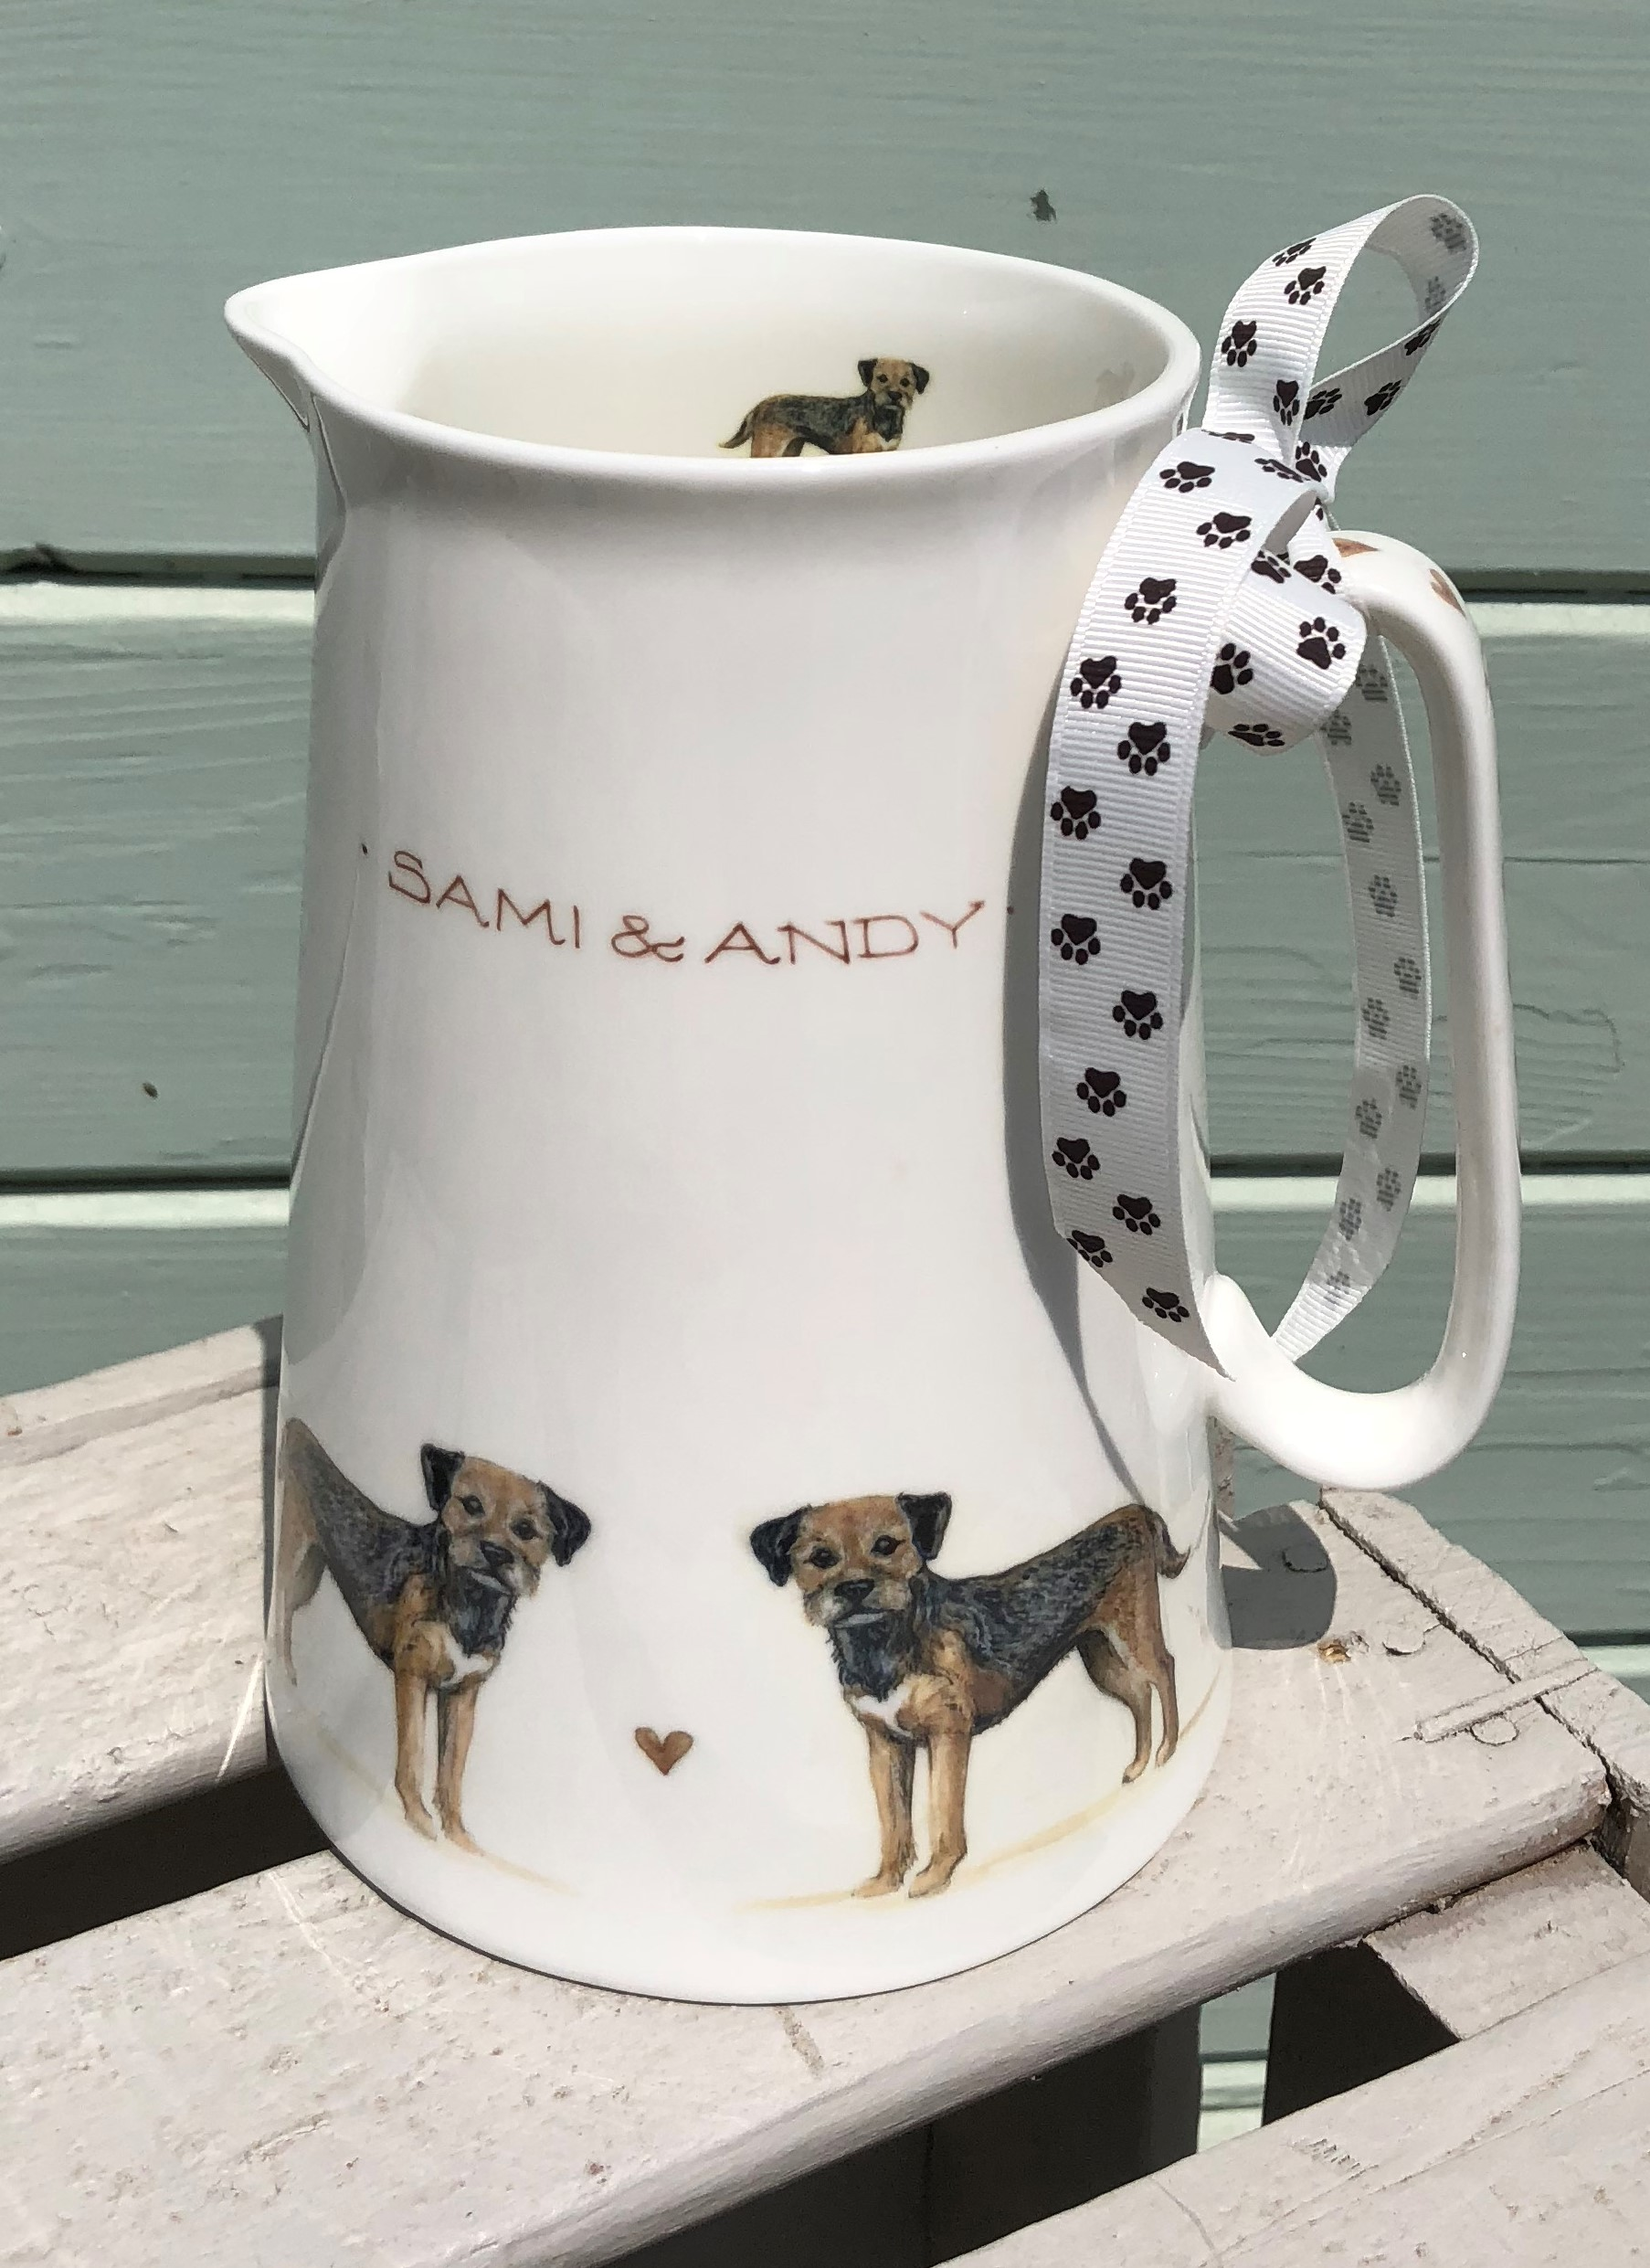 Border Terrier 3 Pint Jug with inscription. From 32.50.